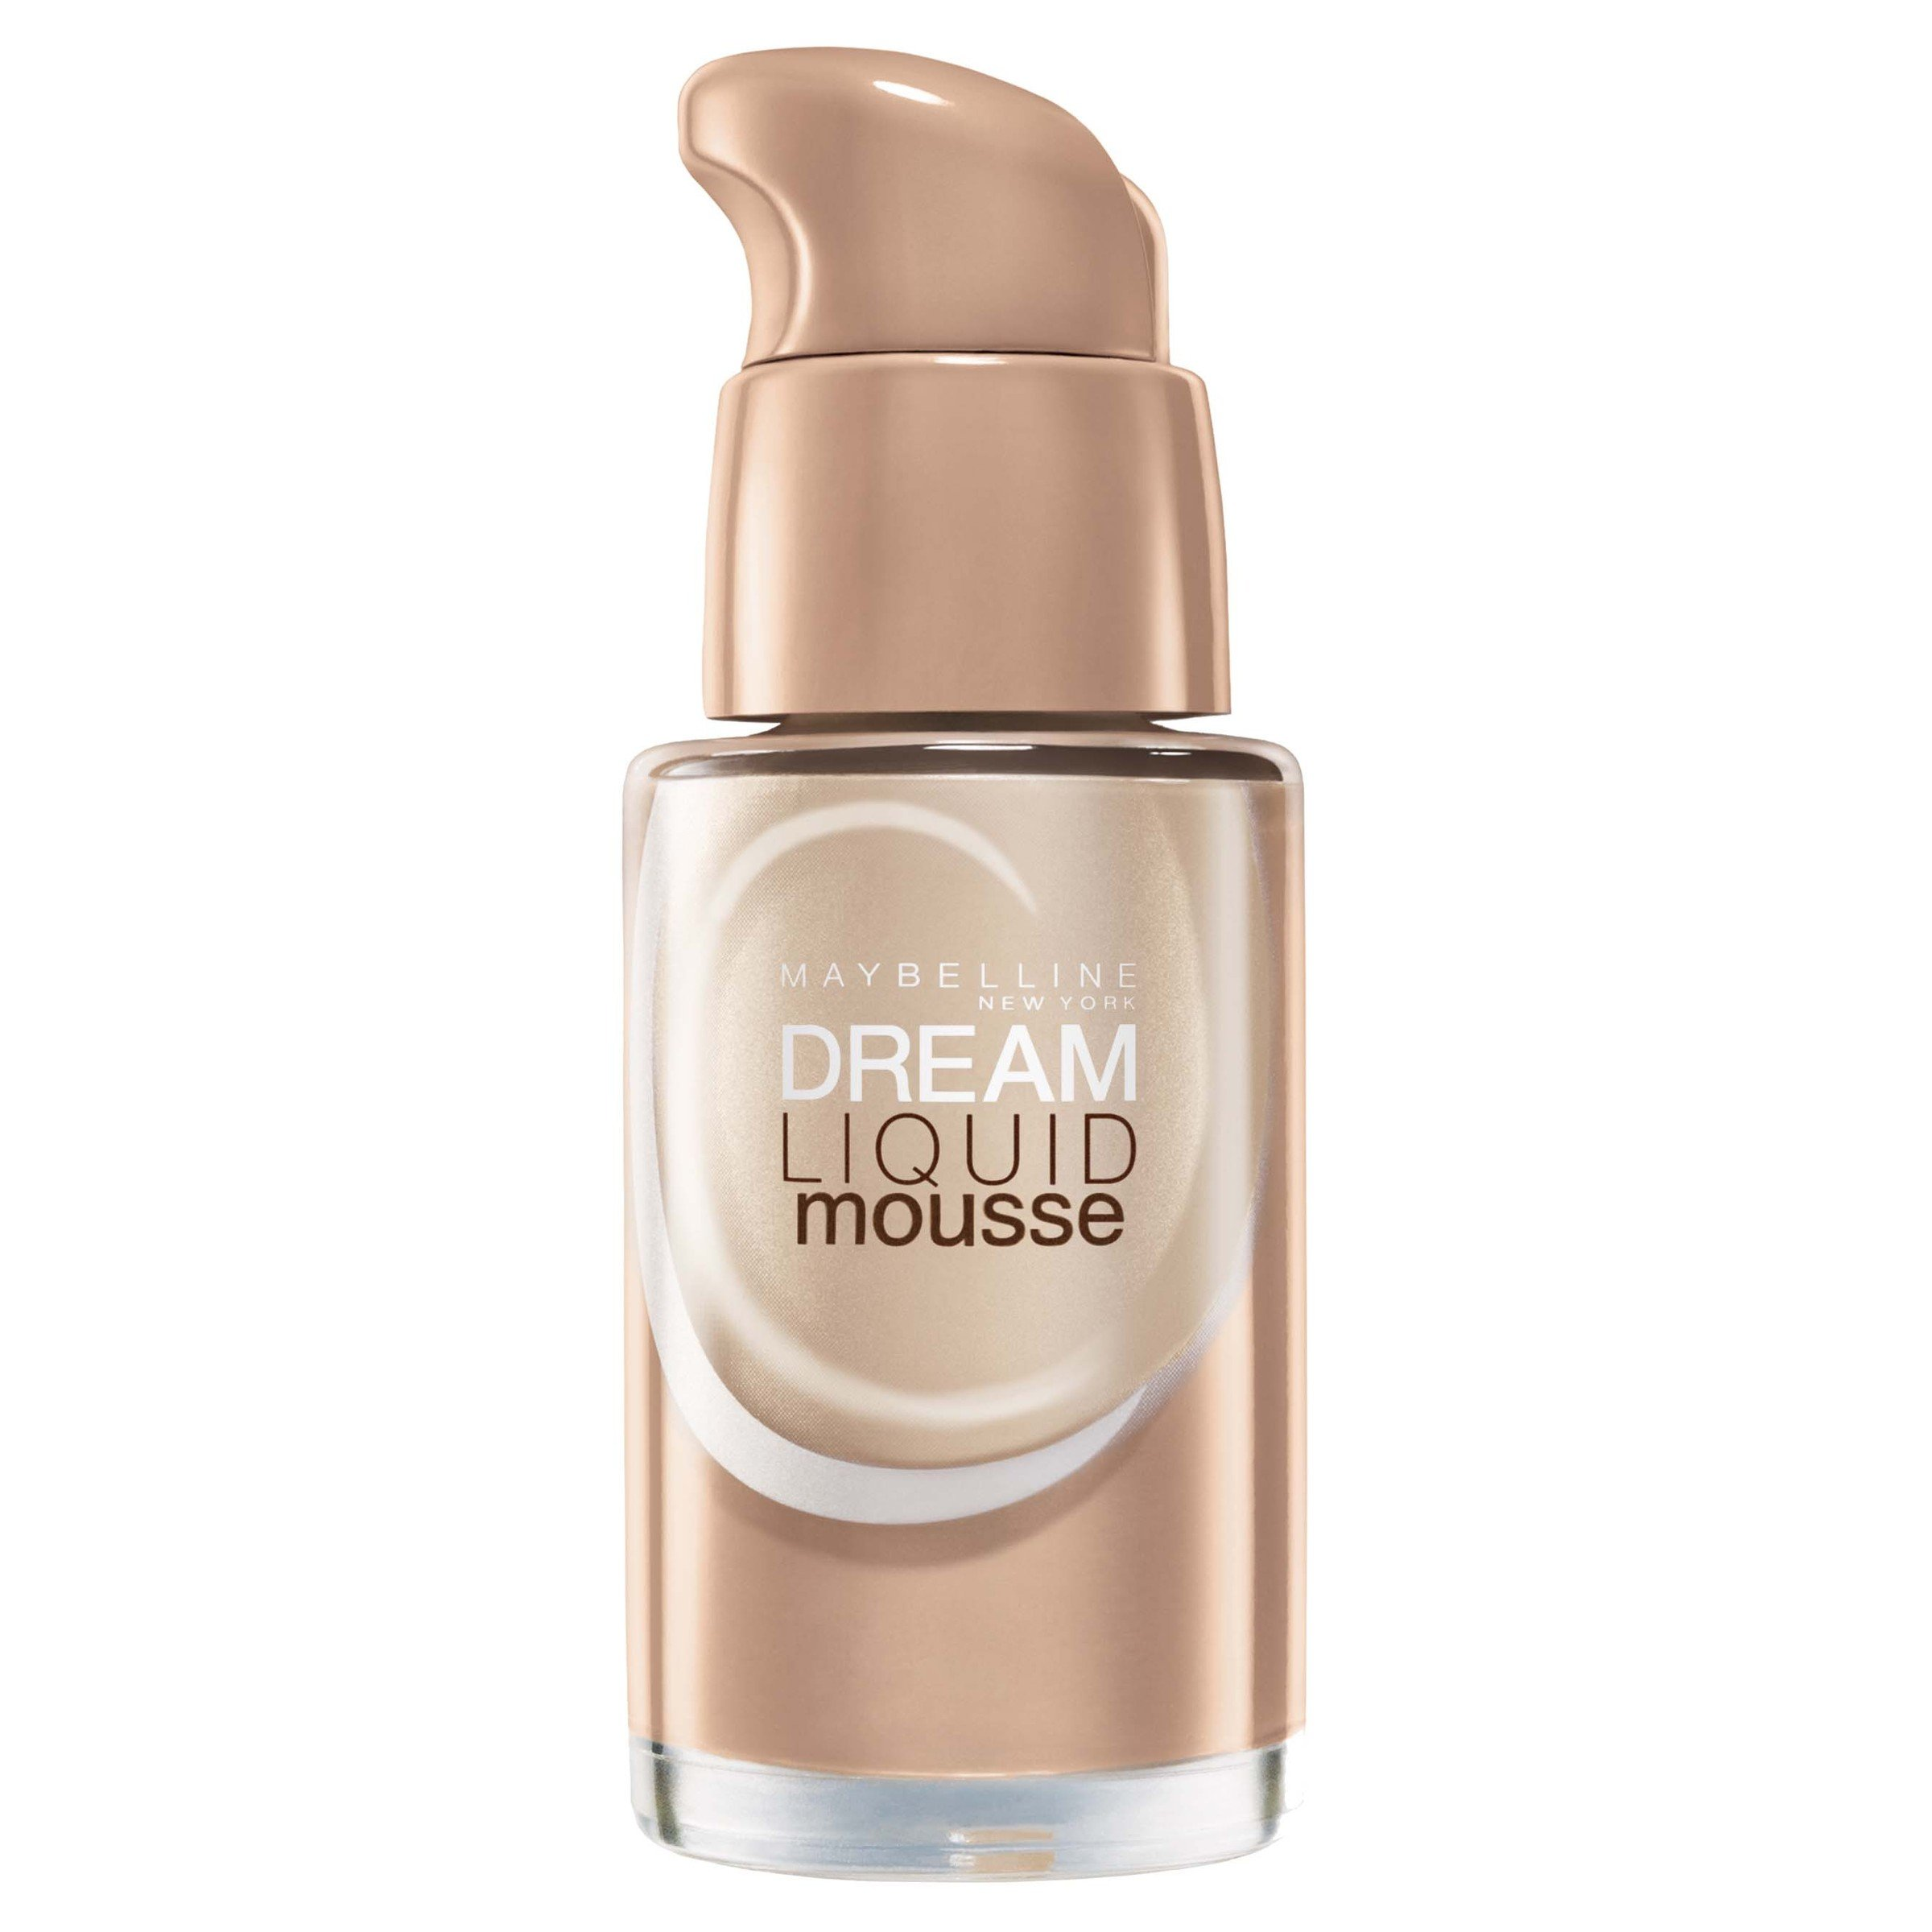 Maybelline New York Dream Liquid Mousse Foundation, Porcelain Ivory, 1 fl. oz.(Packaging May Vary)